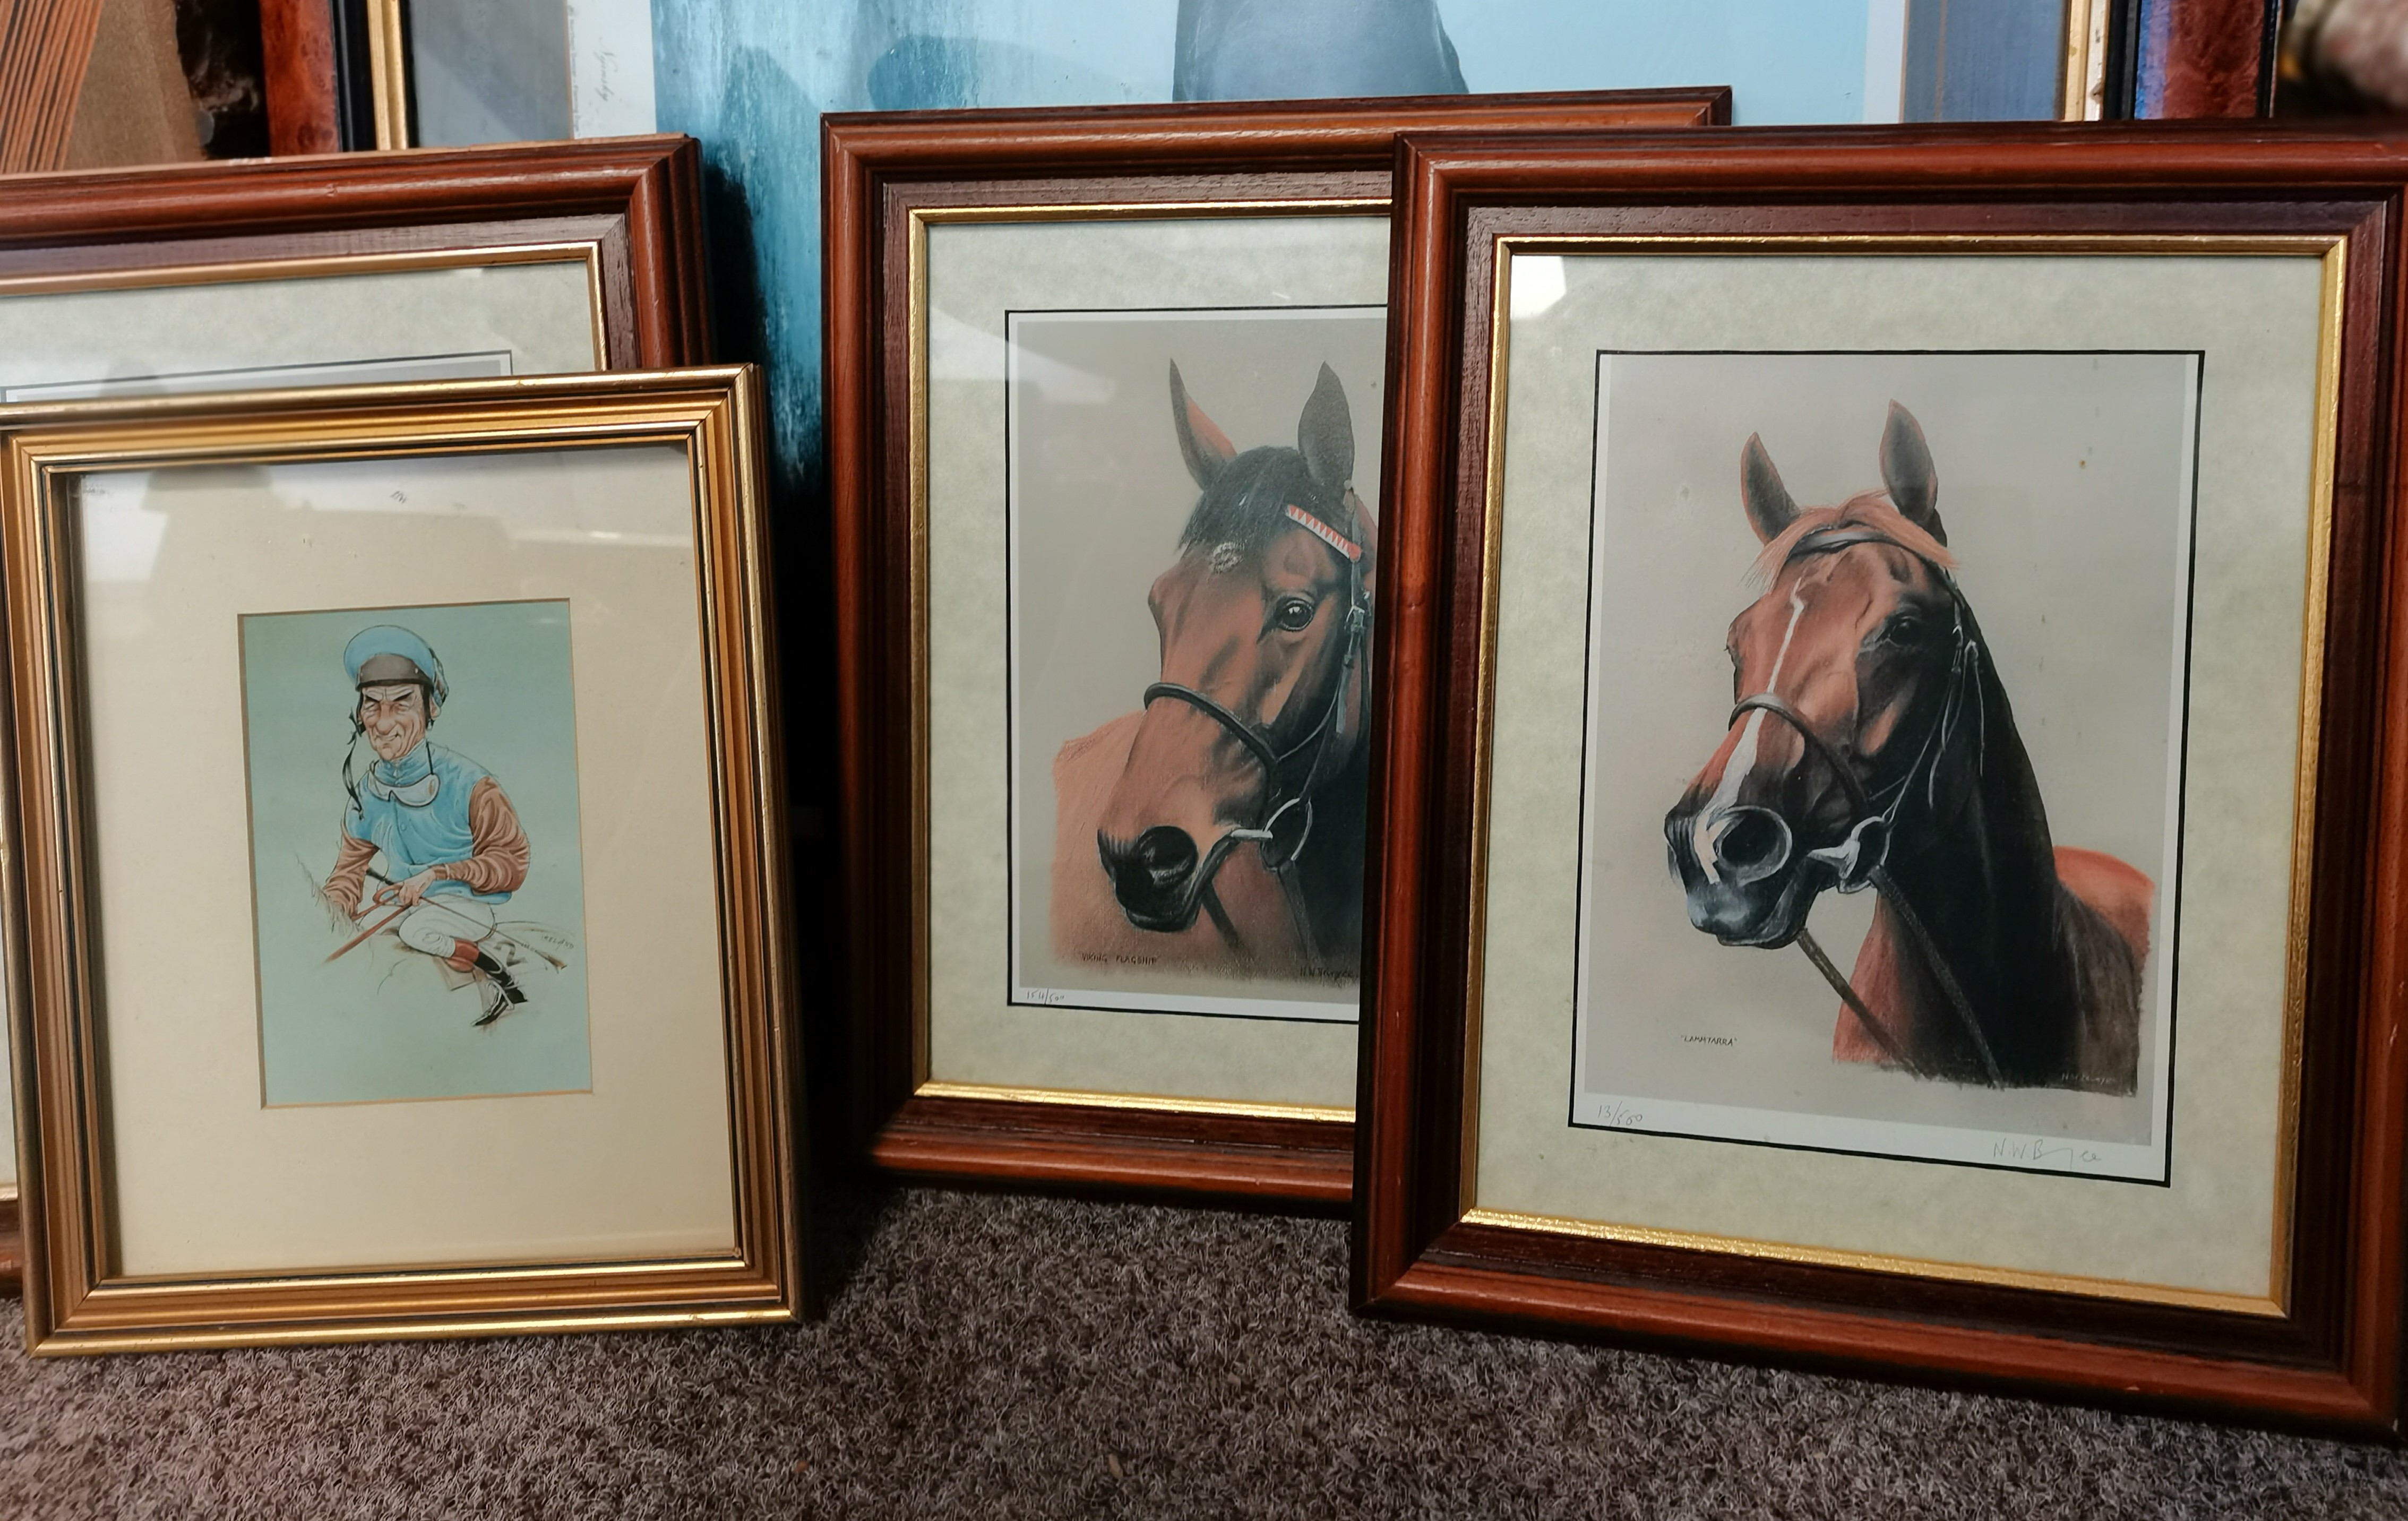 """4 Small Paintings of Horses by """"NW Brunyee"""", 1 Print of Nginsky 1 John Austin Print 2 other Pictures - Image 2 of 8"""